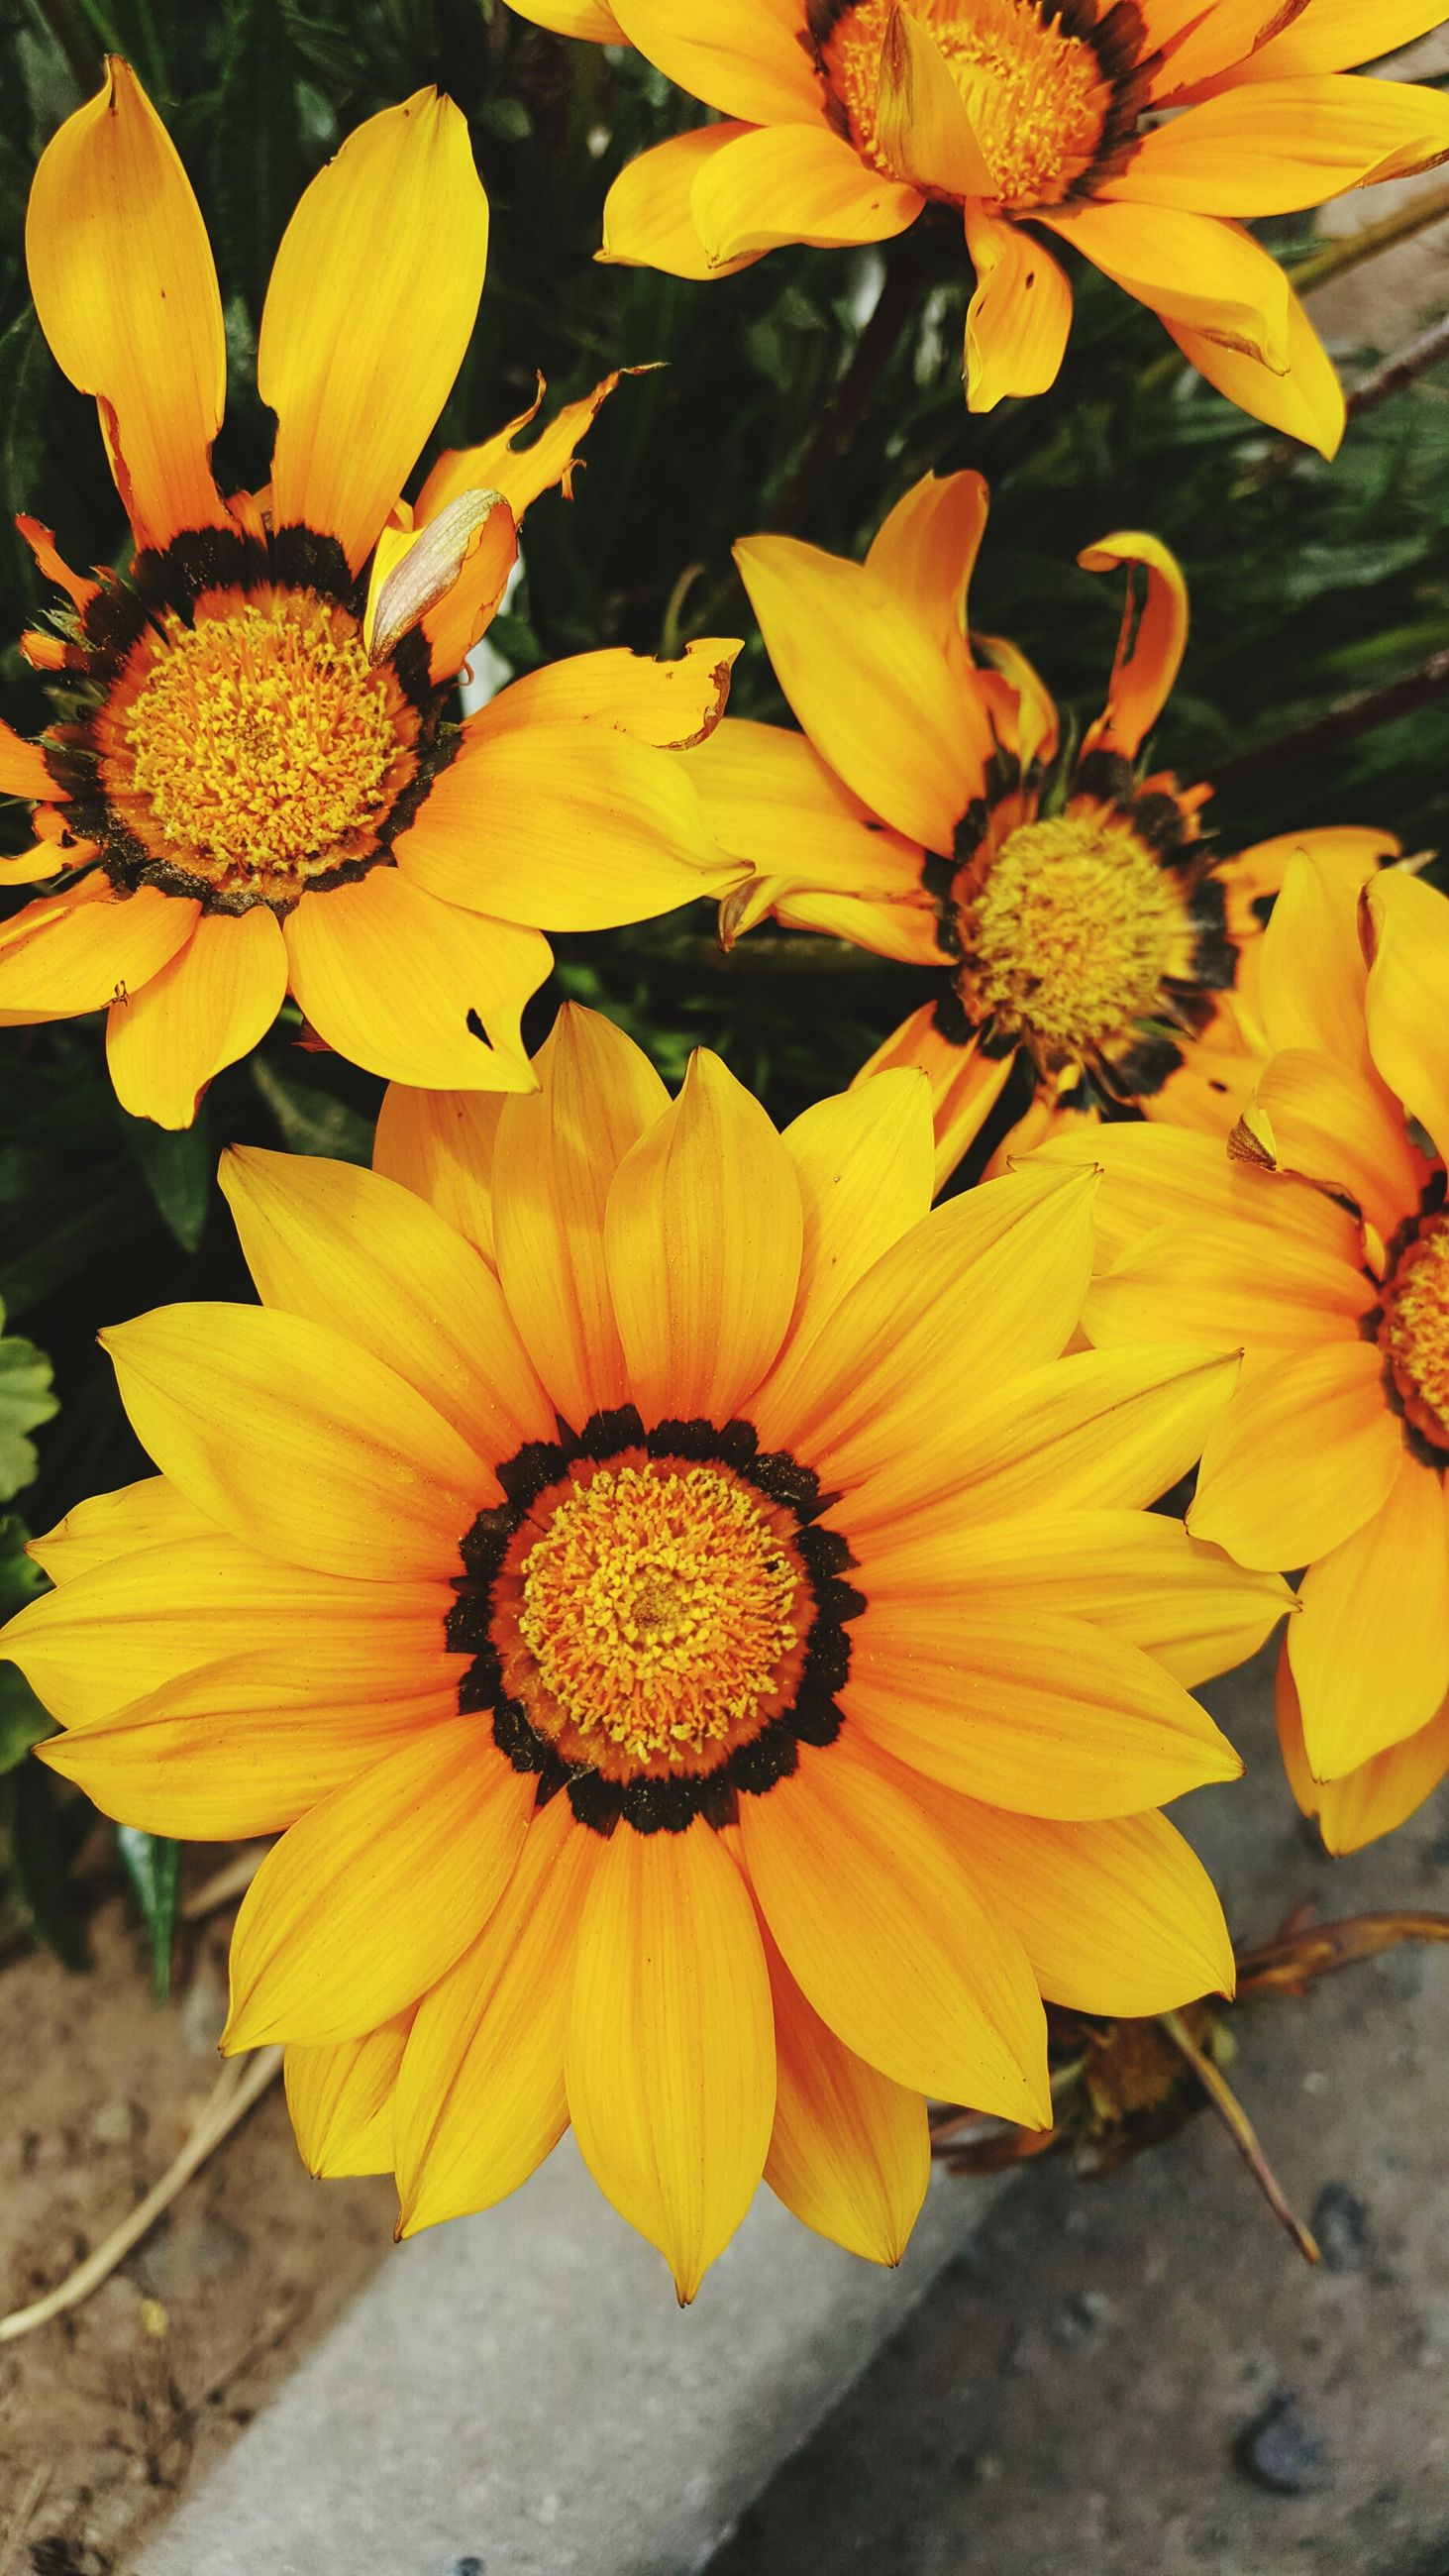 flower, petal, yellow, flower head, fragility, freshness, close-up, growth, beauty in nature, pollen, blooming, plant, nature, high angle view, focus on foreground, in bloom, day, no people, outdoors, botany